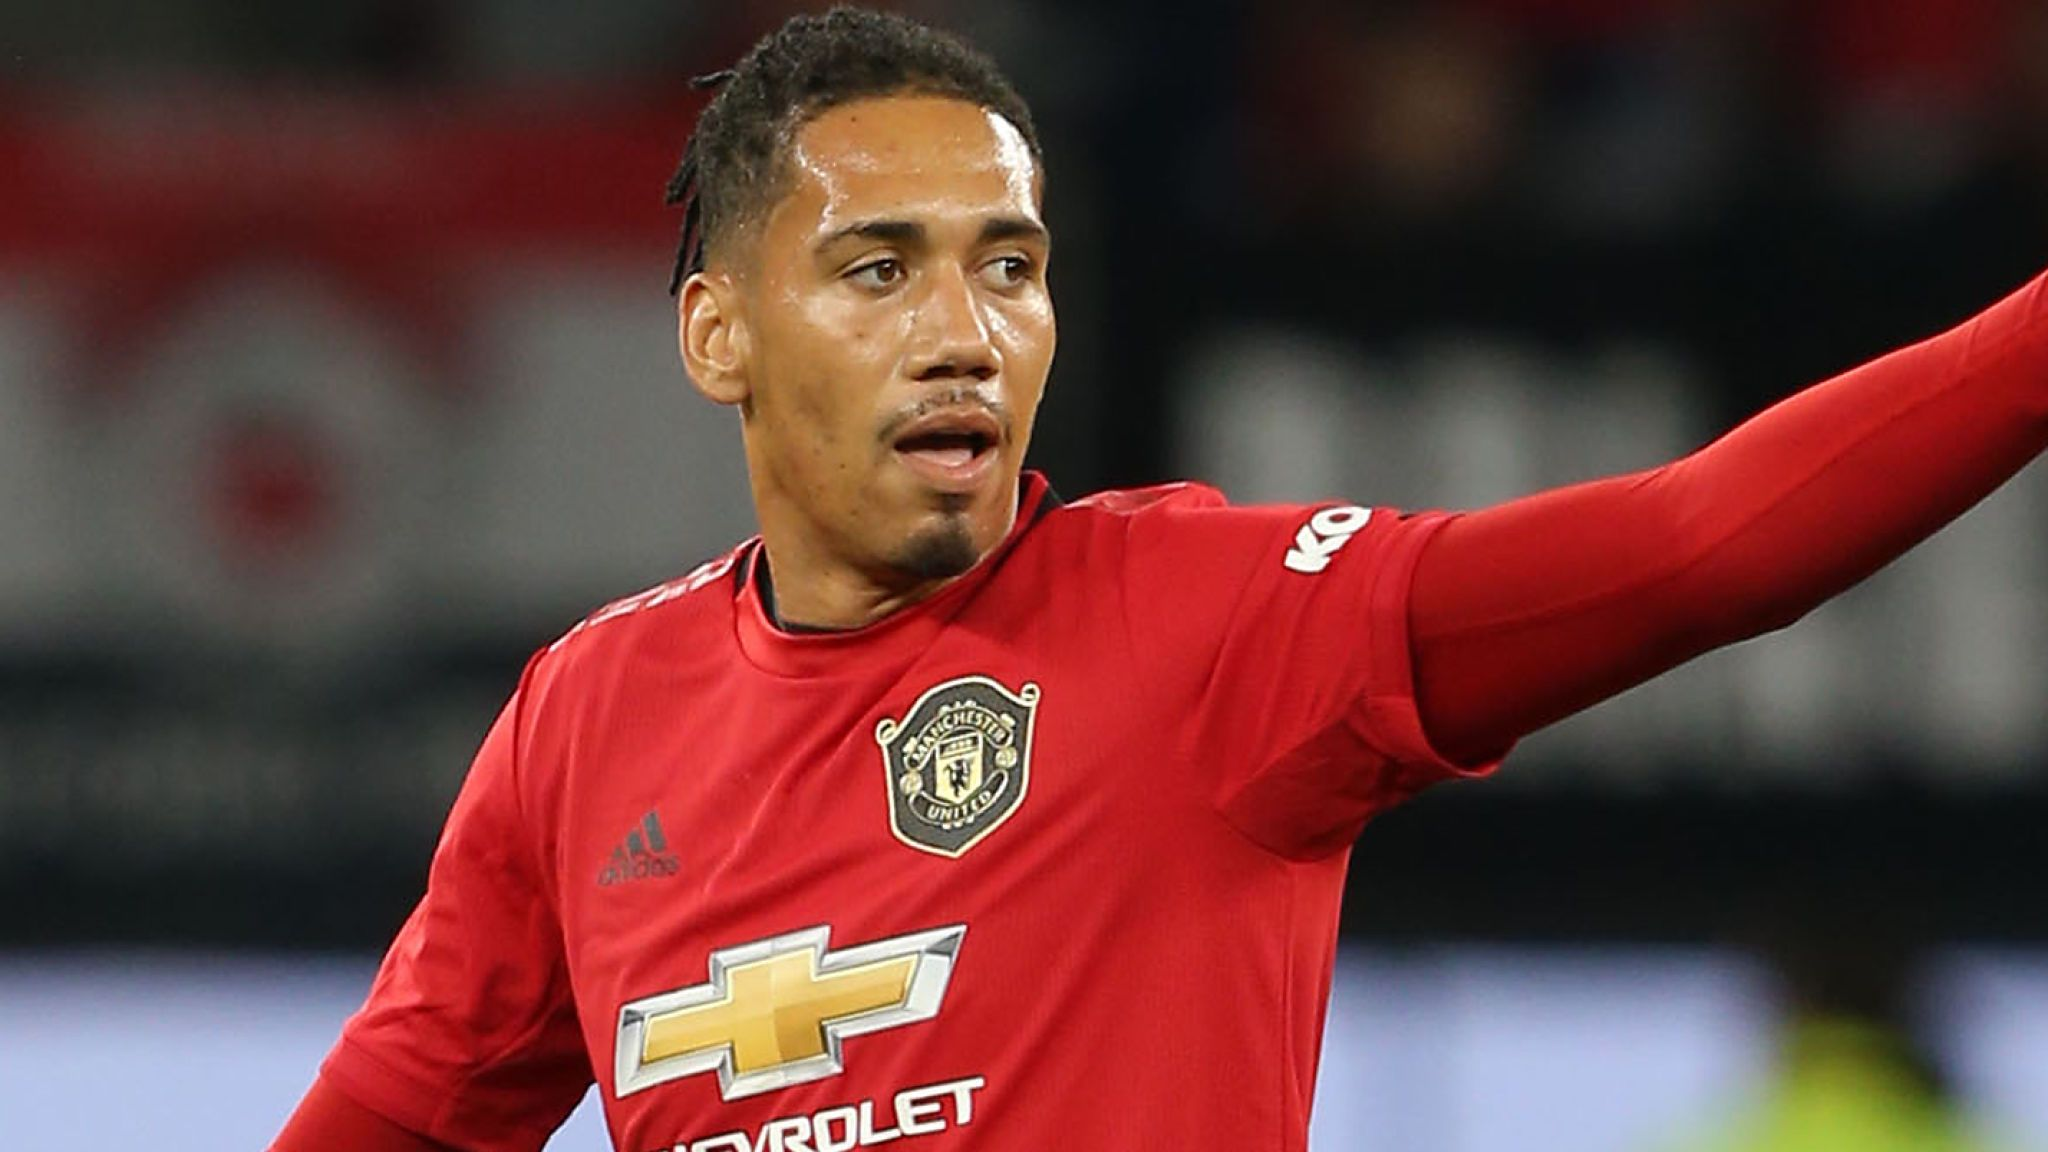 United's Smalling Departs for Roma